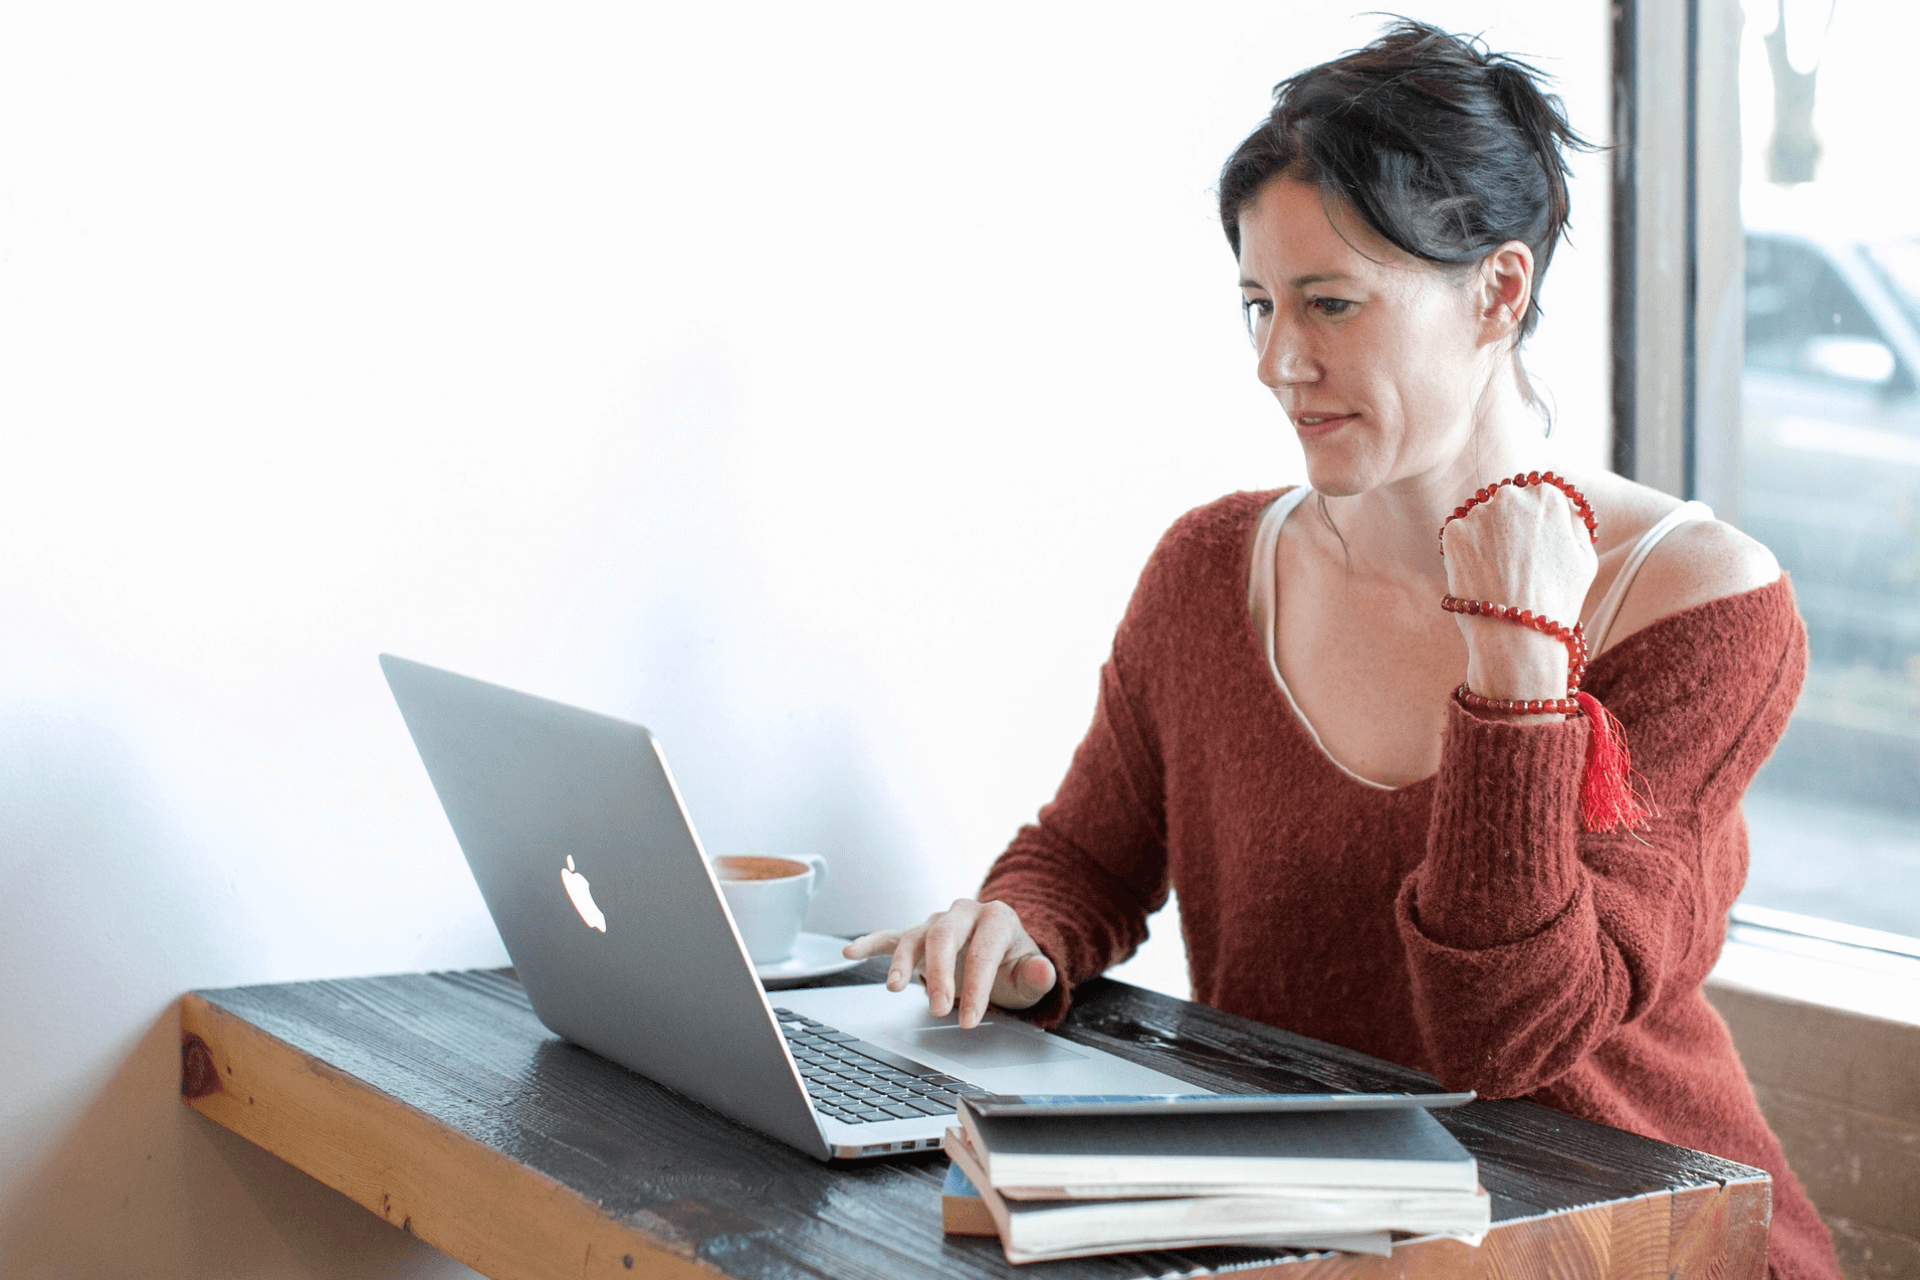 This image depicts a woman making an online donation easily and represents the importance of improving online fundraising for nonprofits